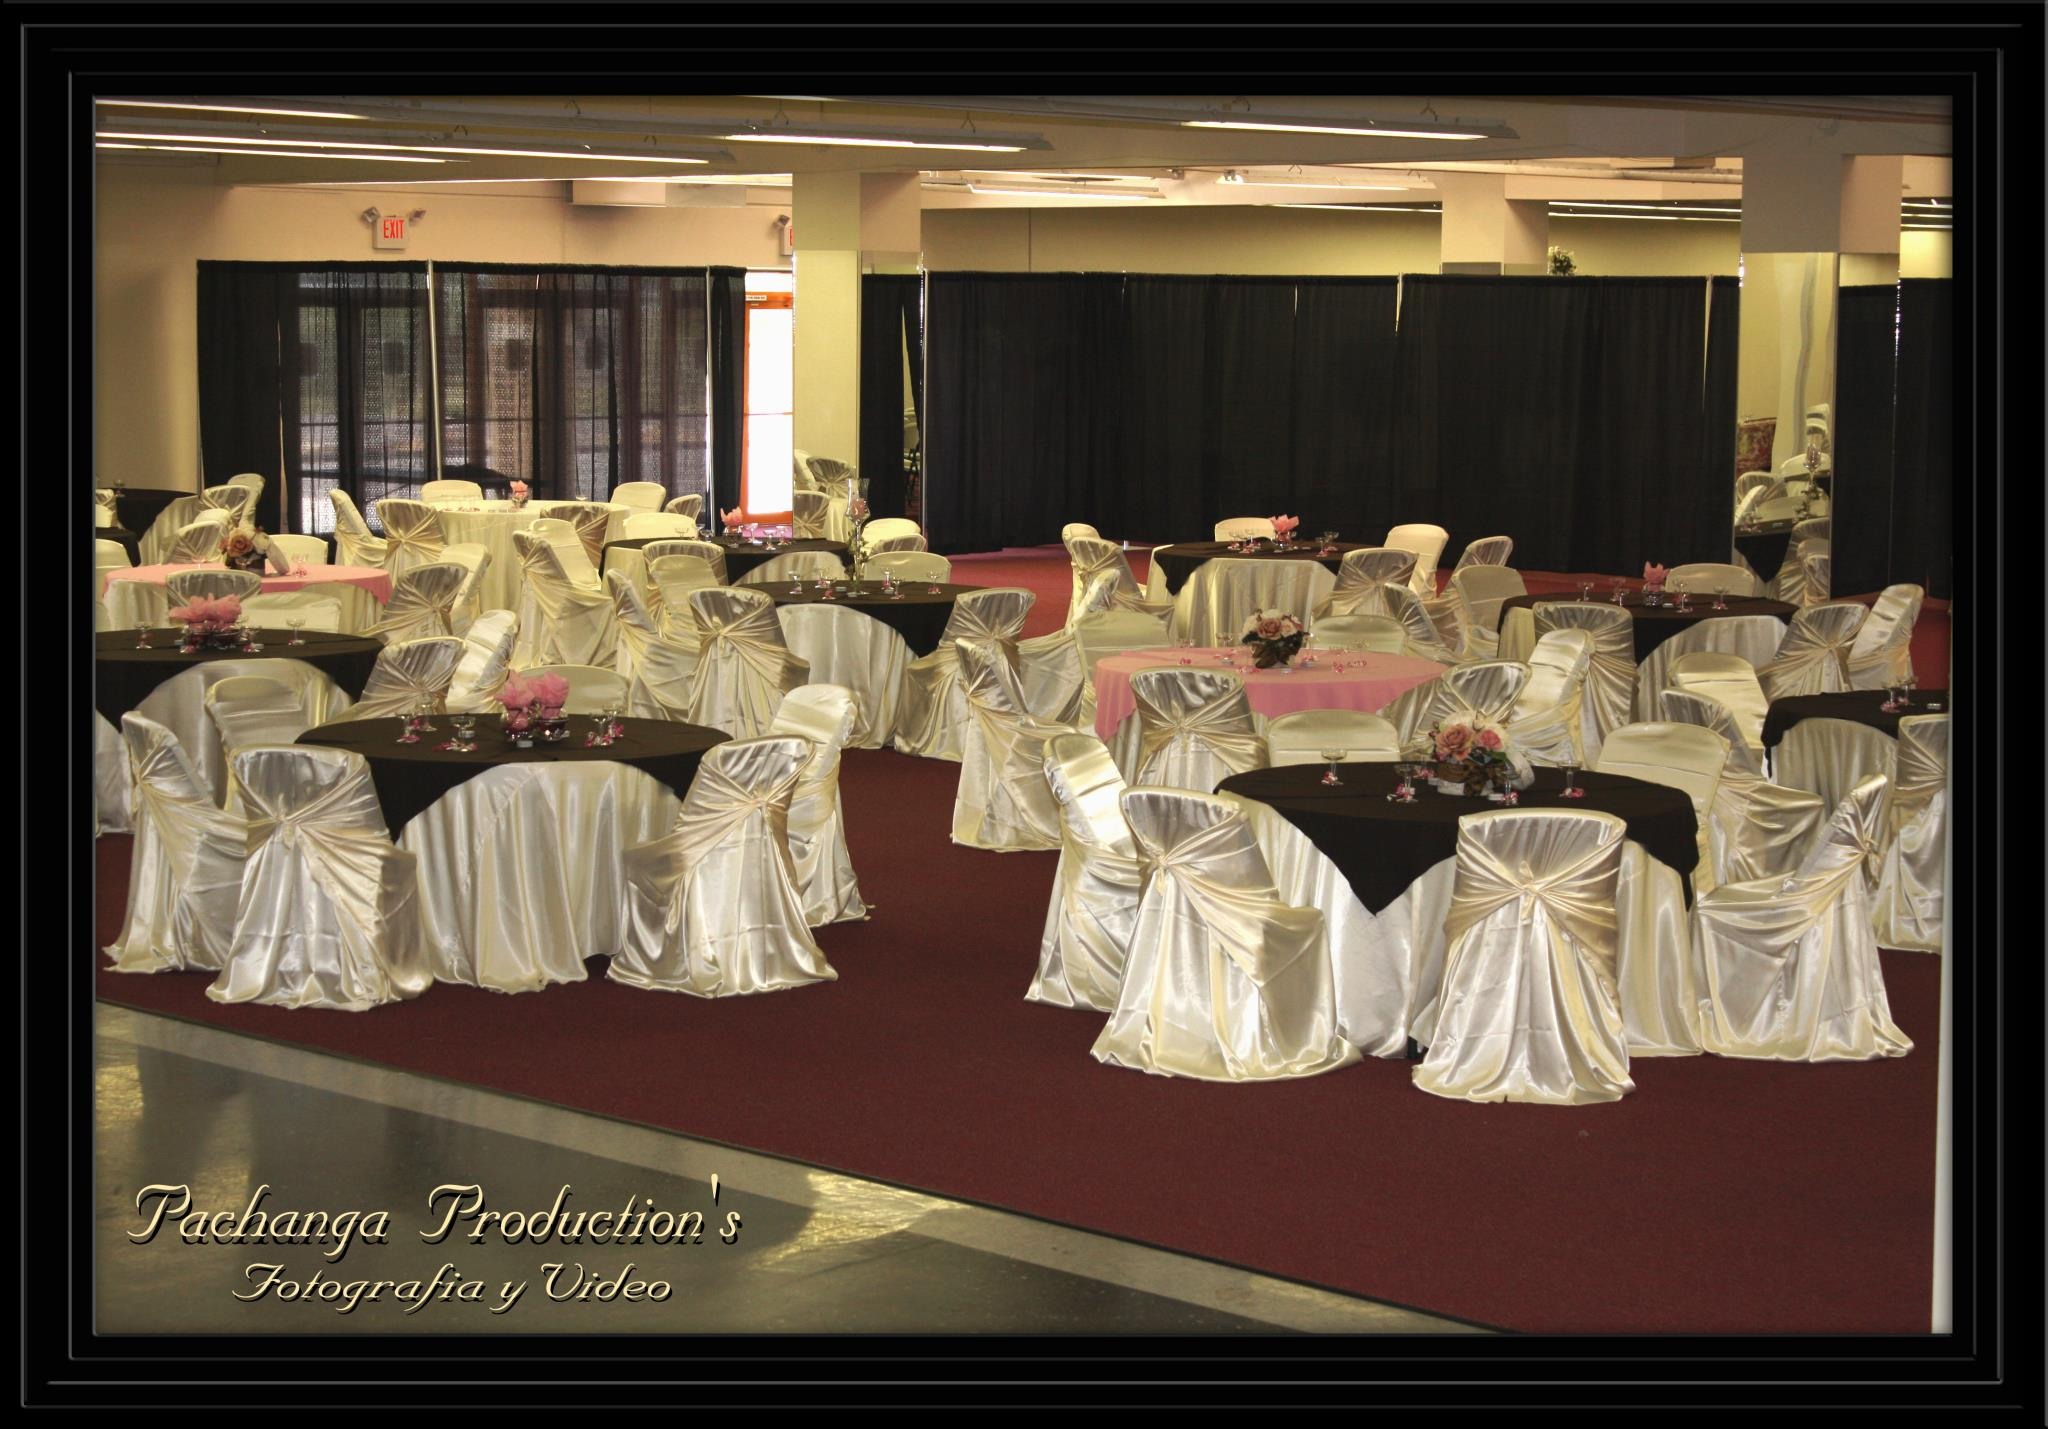 Quinceaera venue at the tucson expo center in arizona tucson expo additional package options junglespirit Images